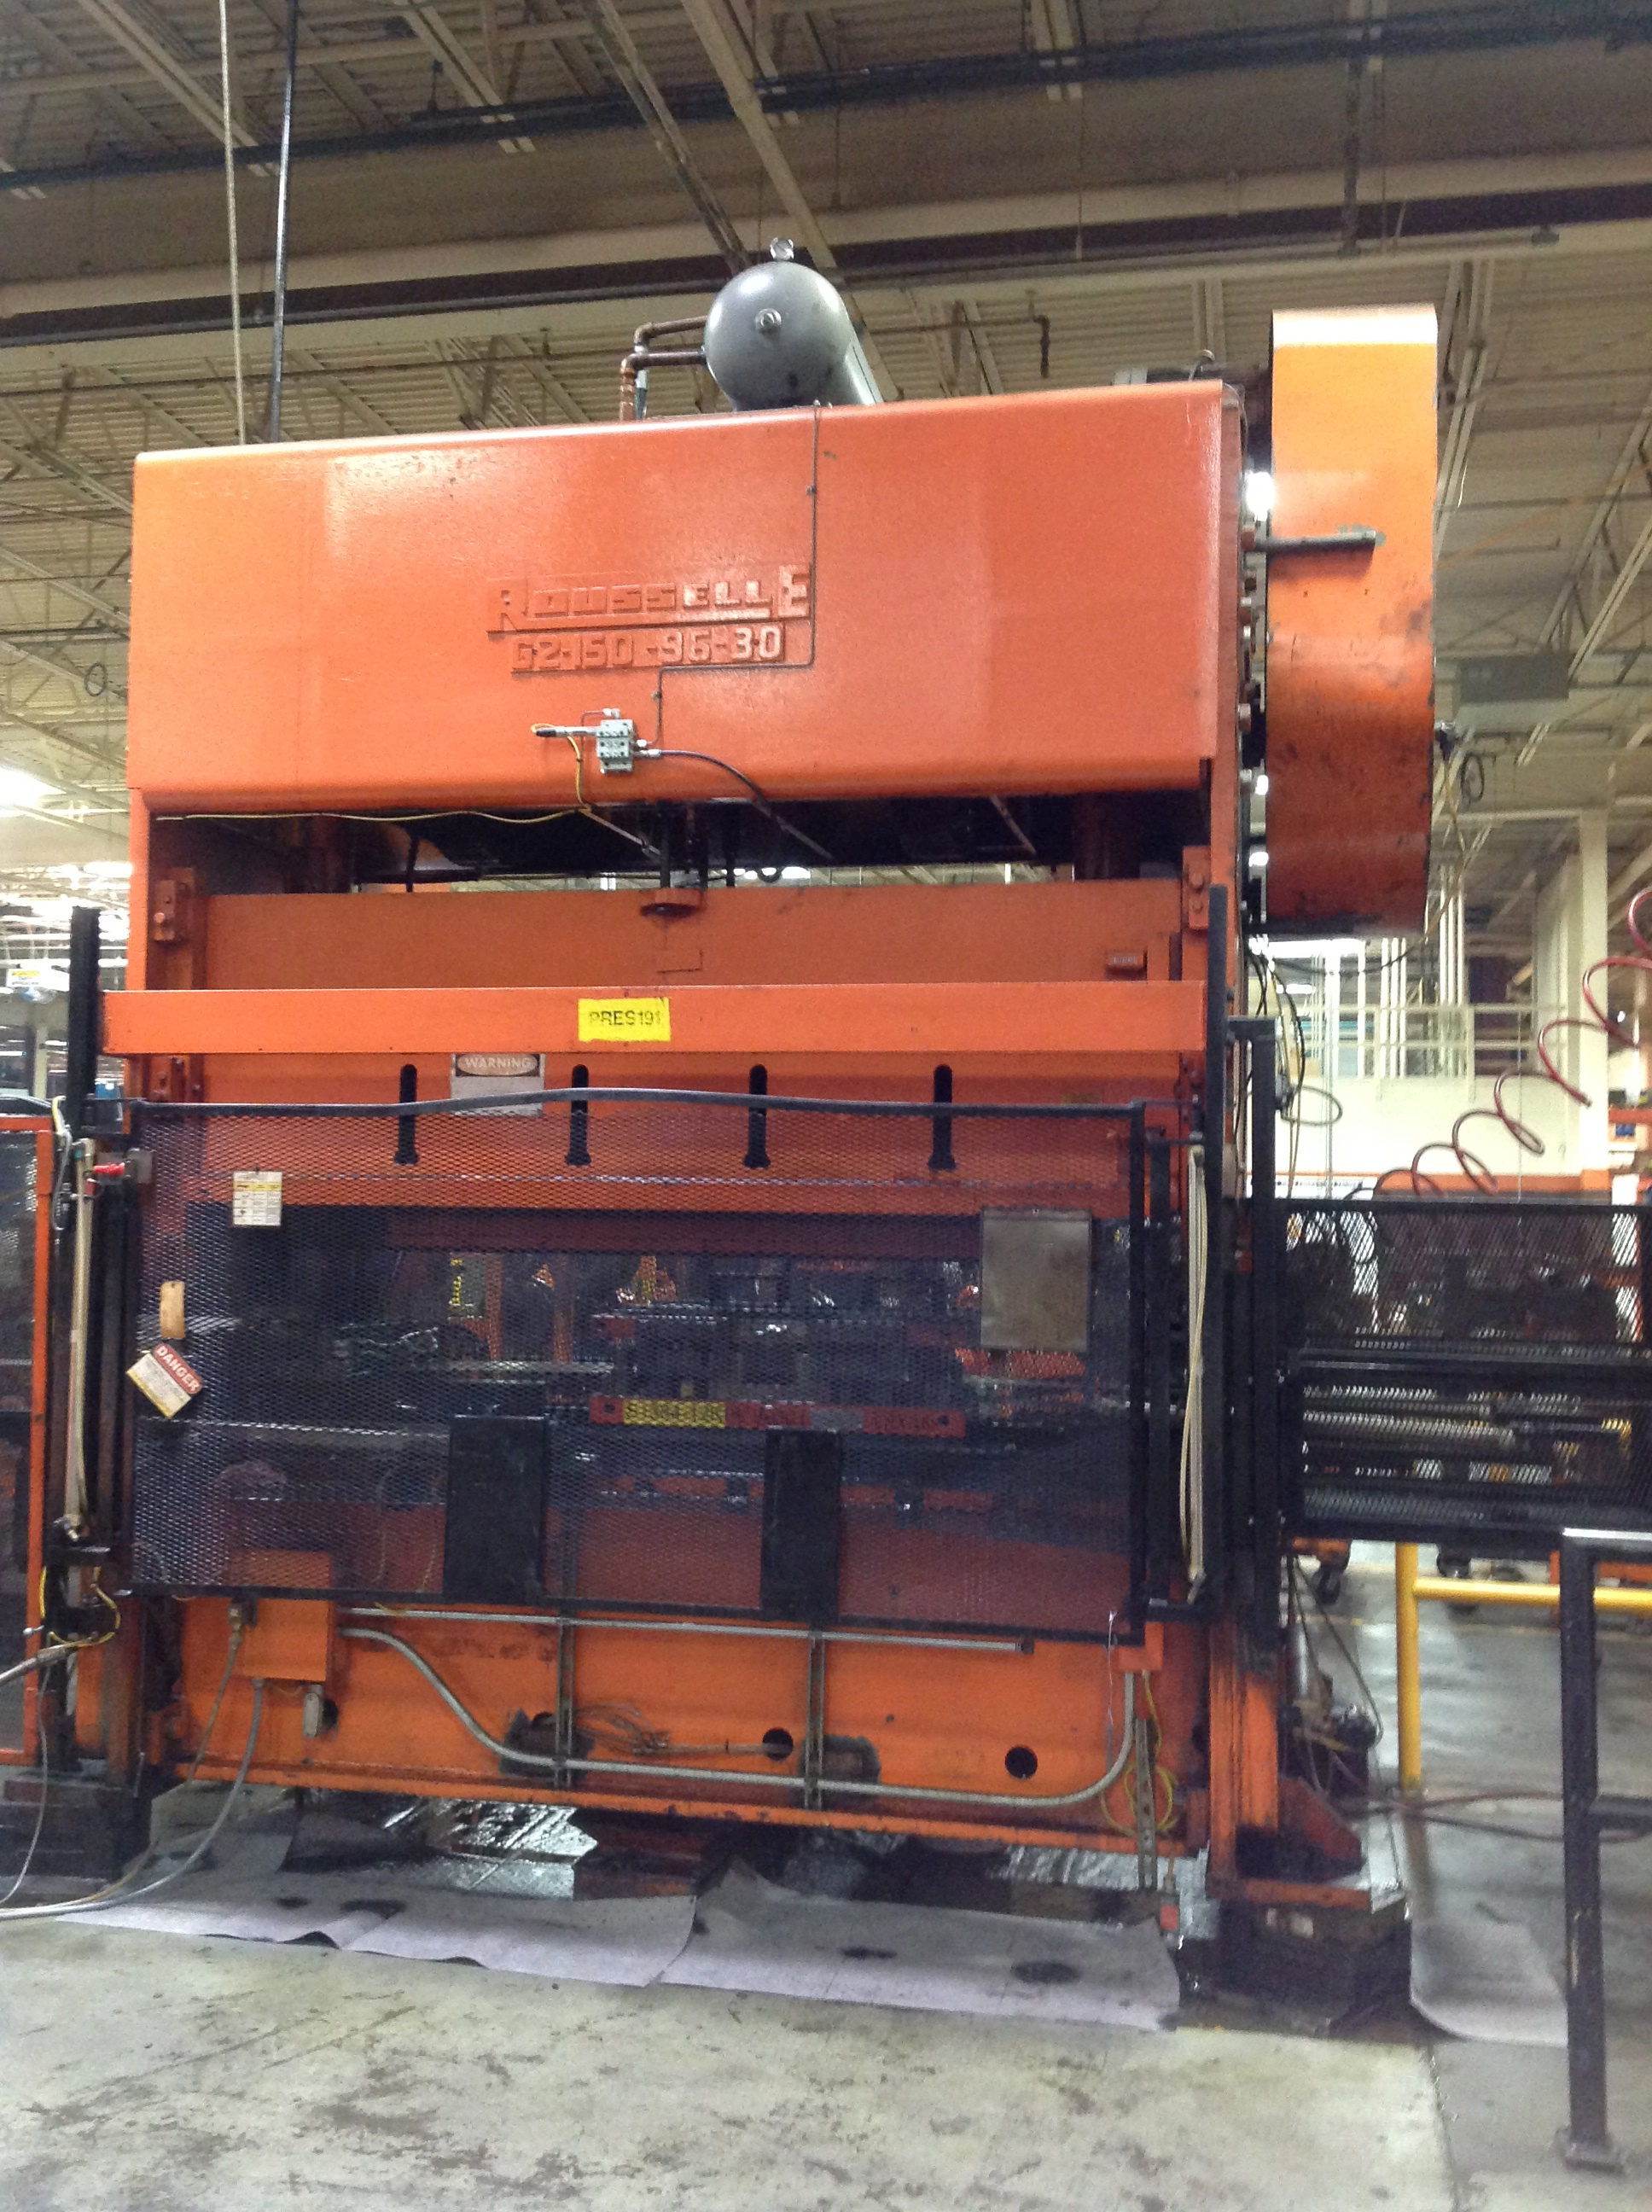 "150 TON ROUSSELLE GAP FRAME PRESS, G2-150-96-30, 6"" STR, 21"" SH, 6"" ADJ, 102"" LR X 30"" FB BA, 35 SPM, 1979"